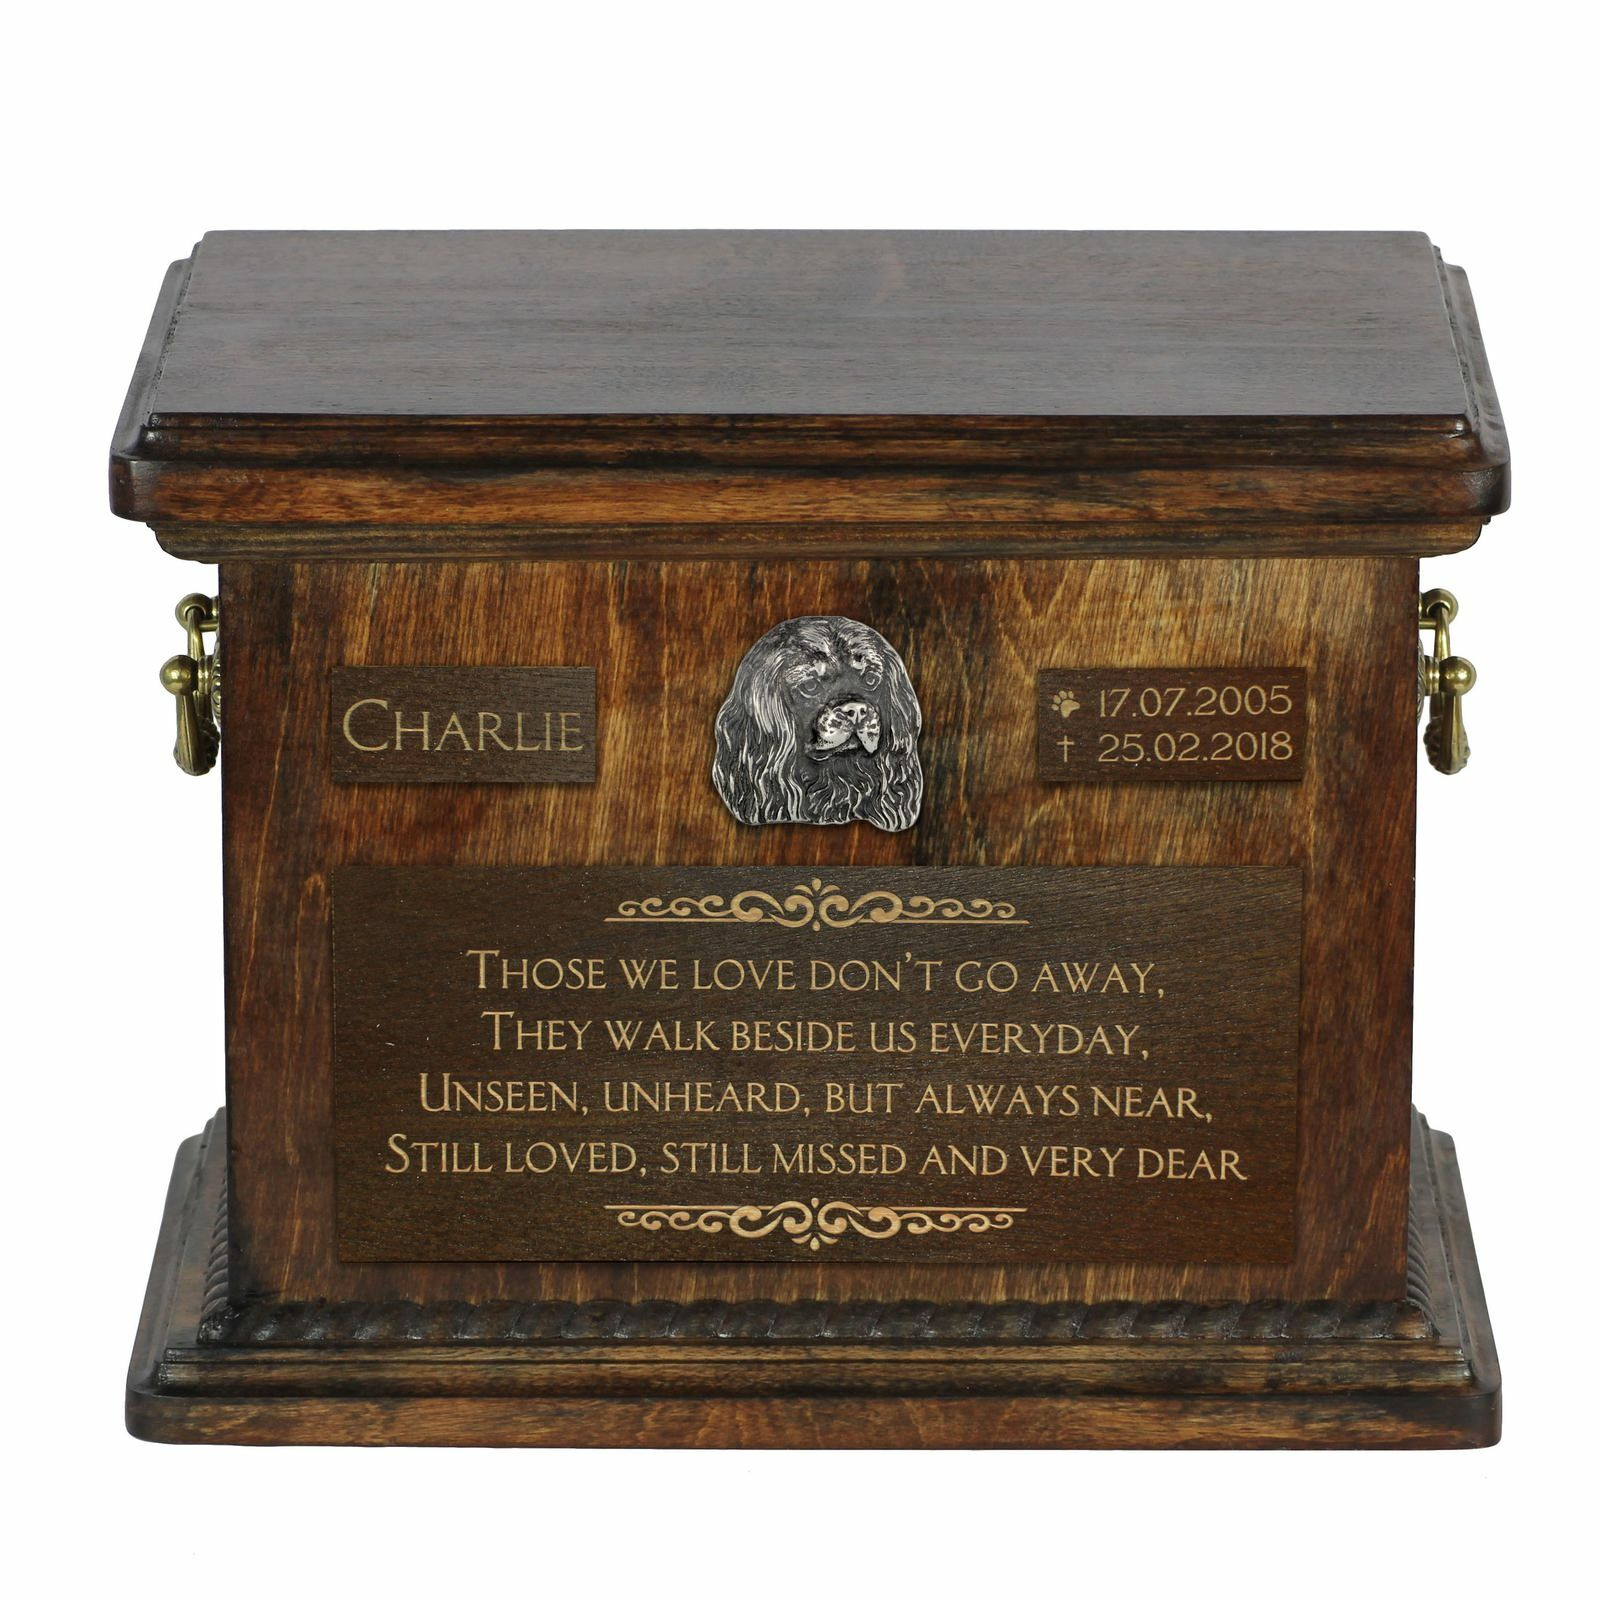 King Charles Spaniel - Urn for dog's ashes with image of a dog, Art Dog